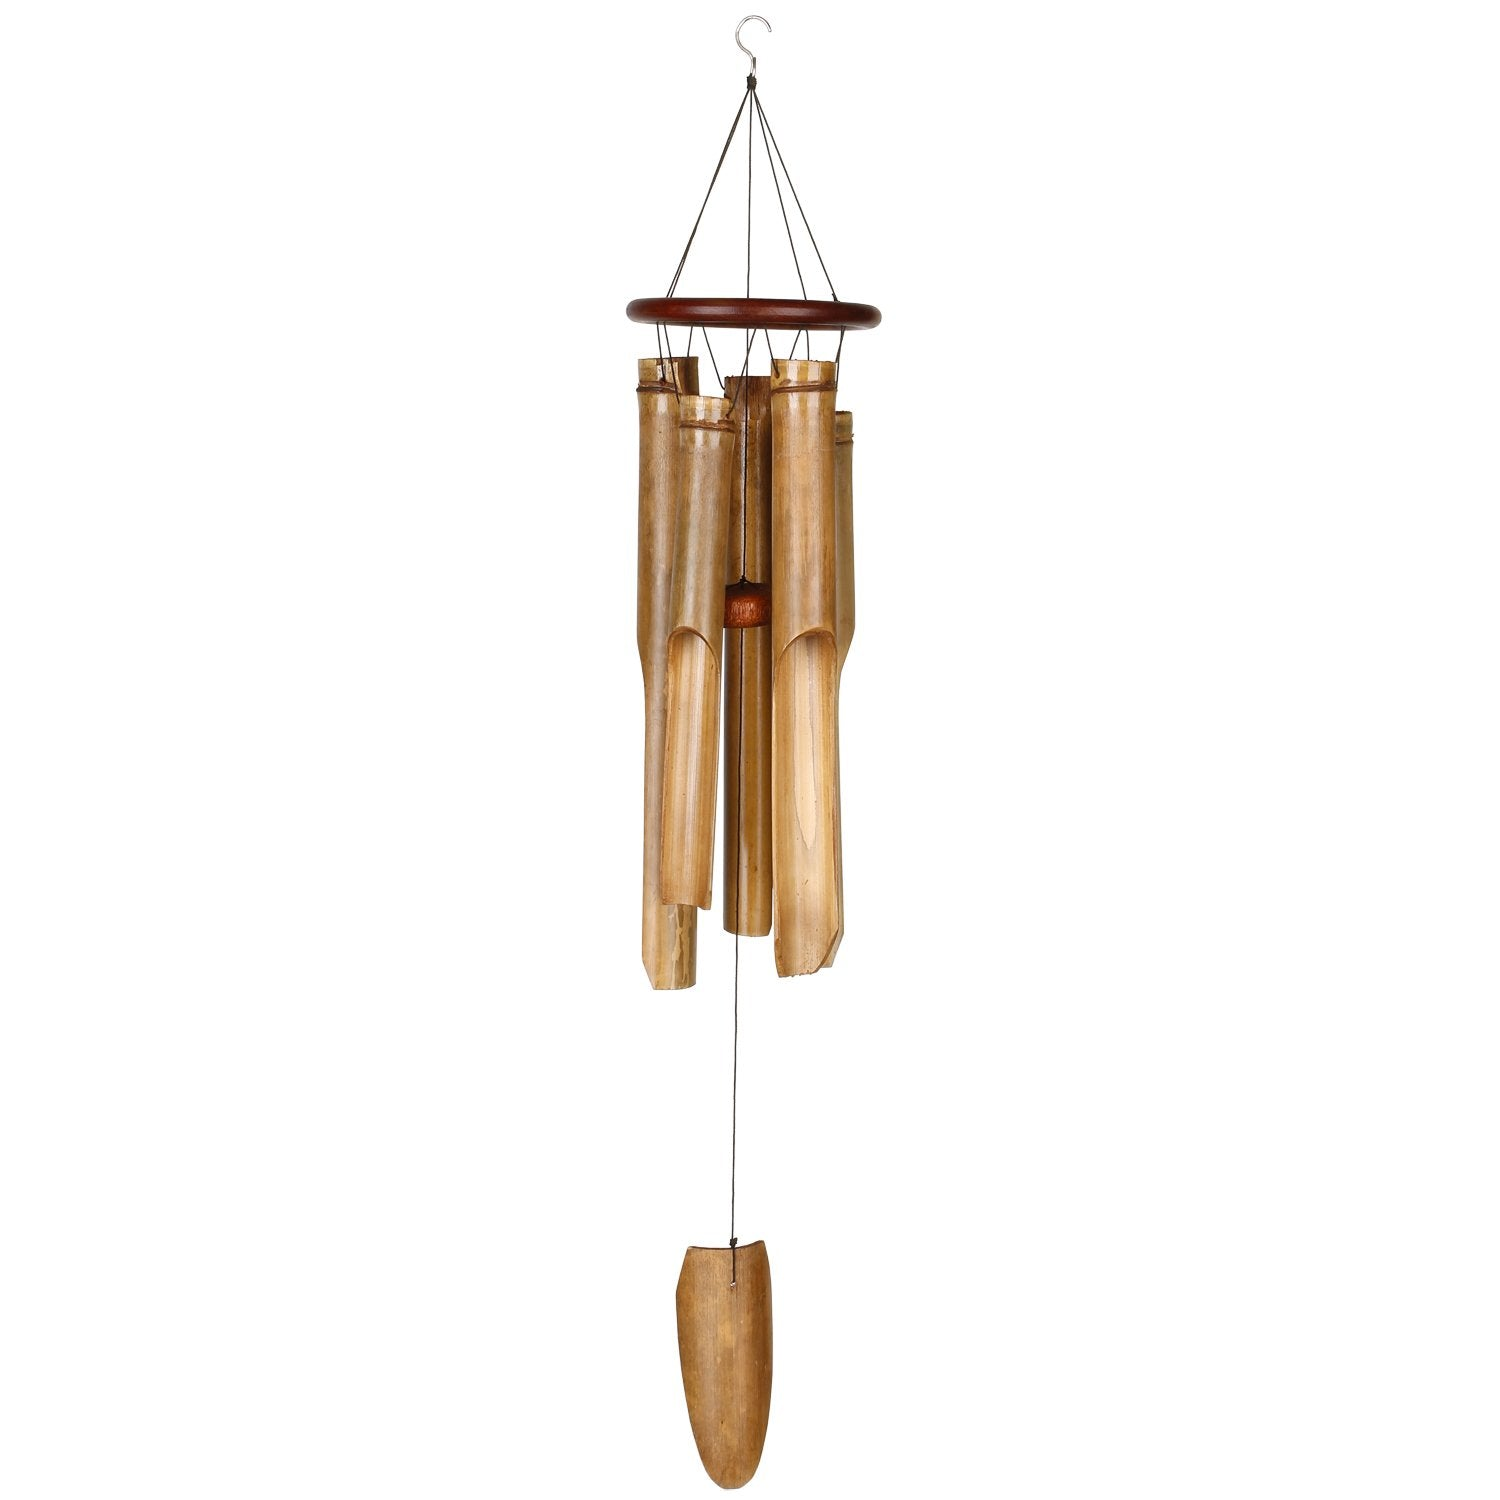 Cocoa Ring Bamboo Chime - Large full product image